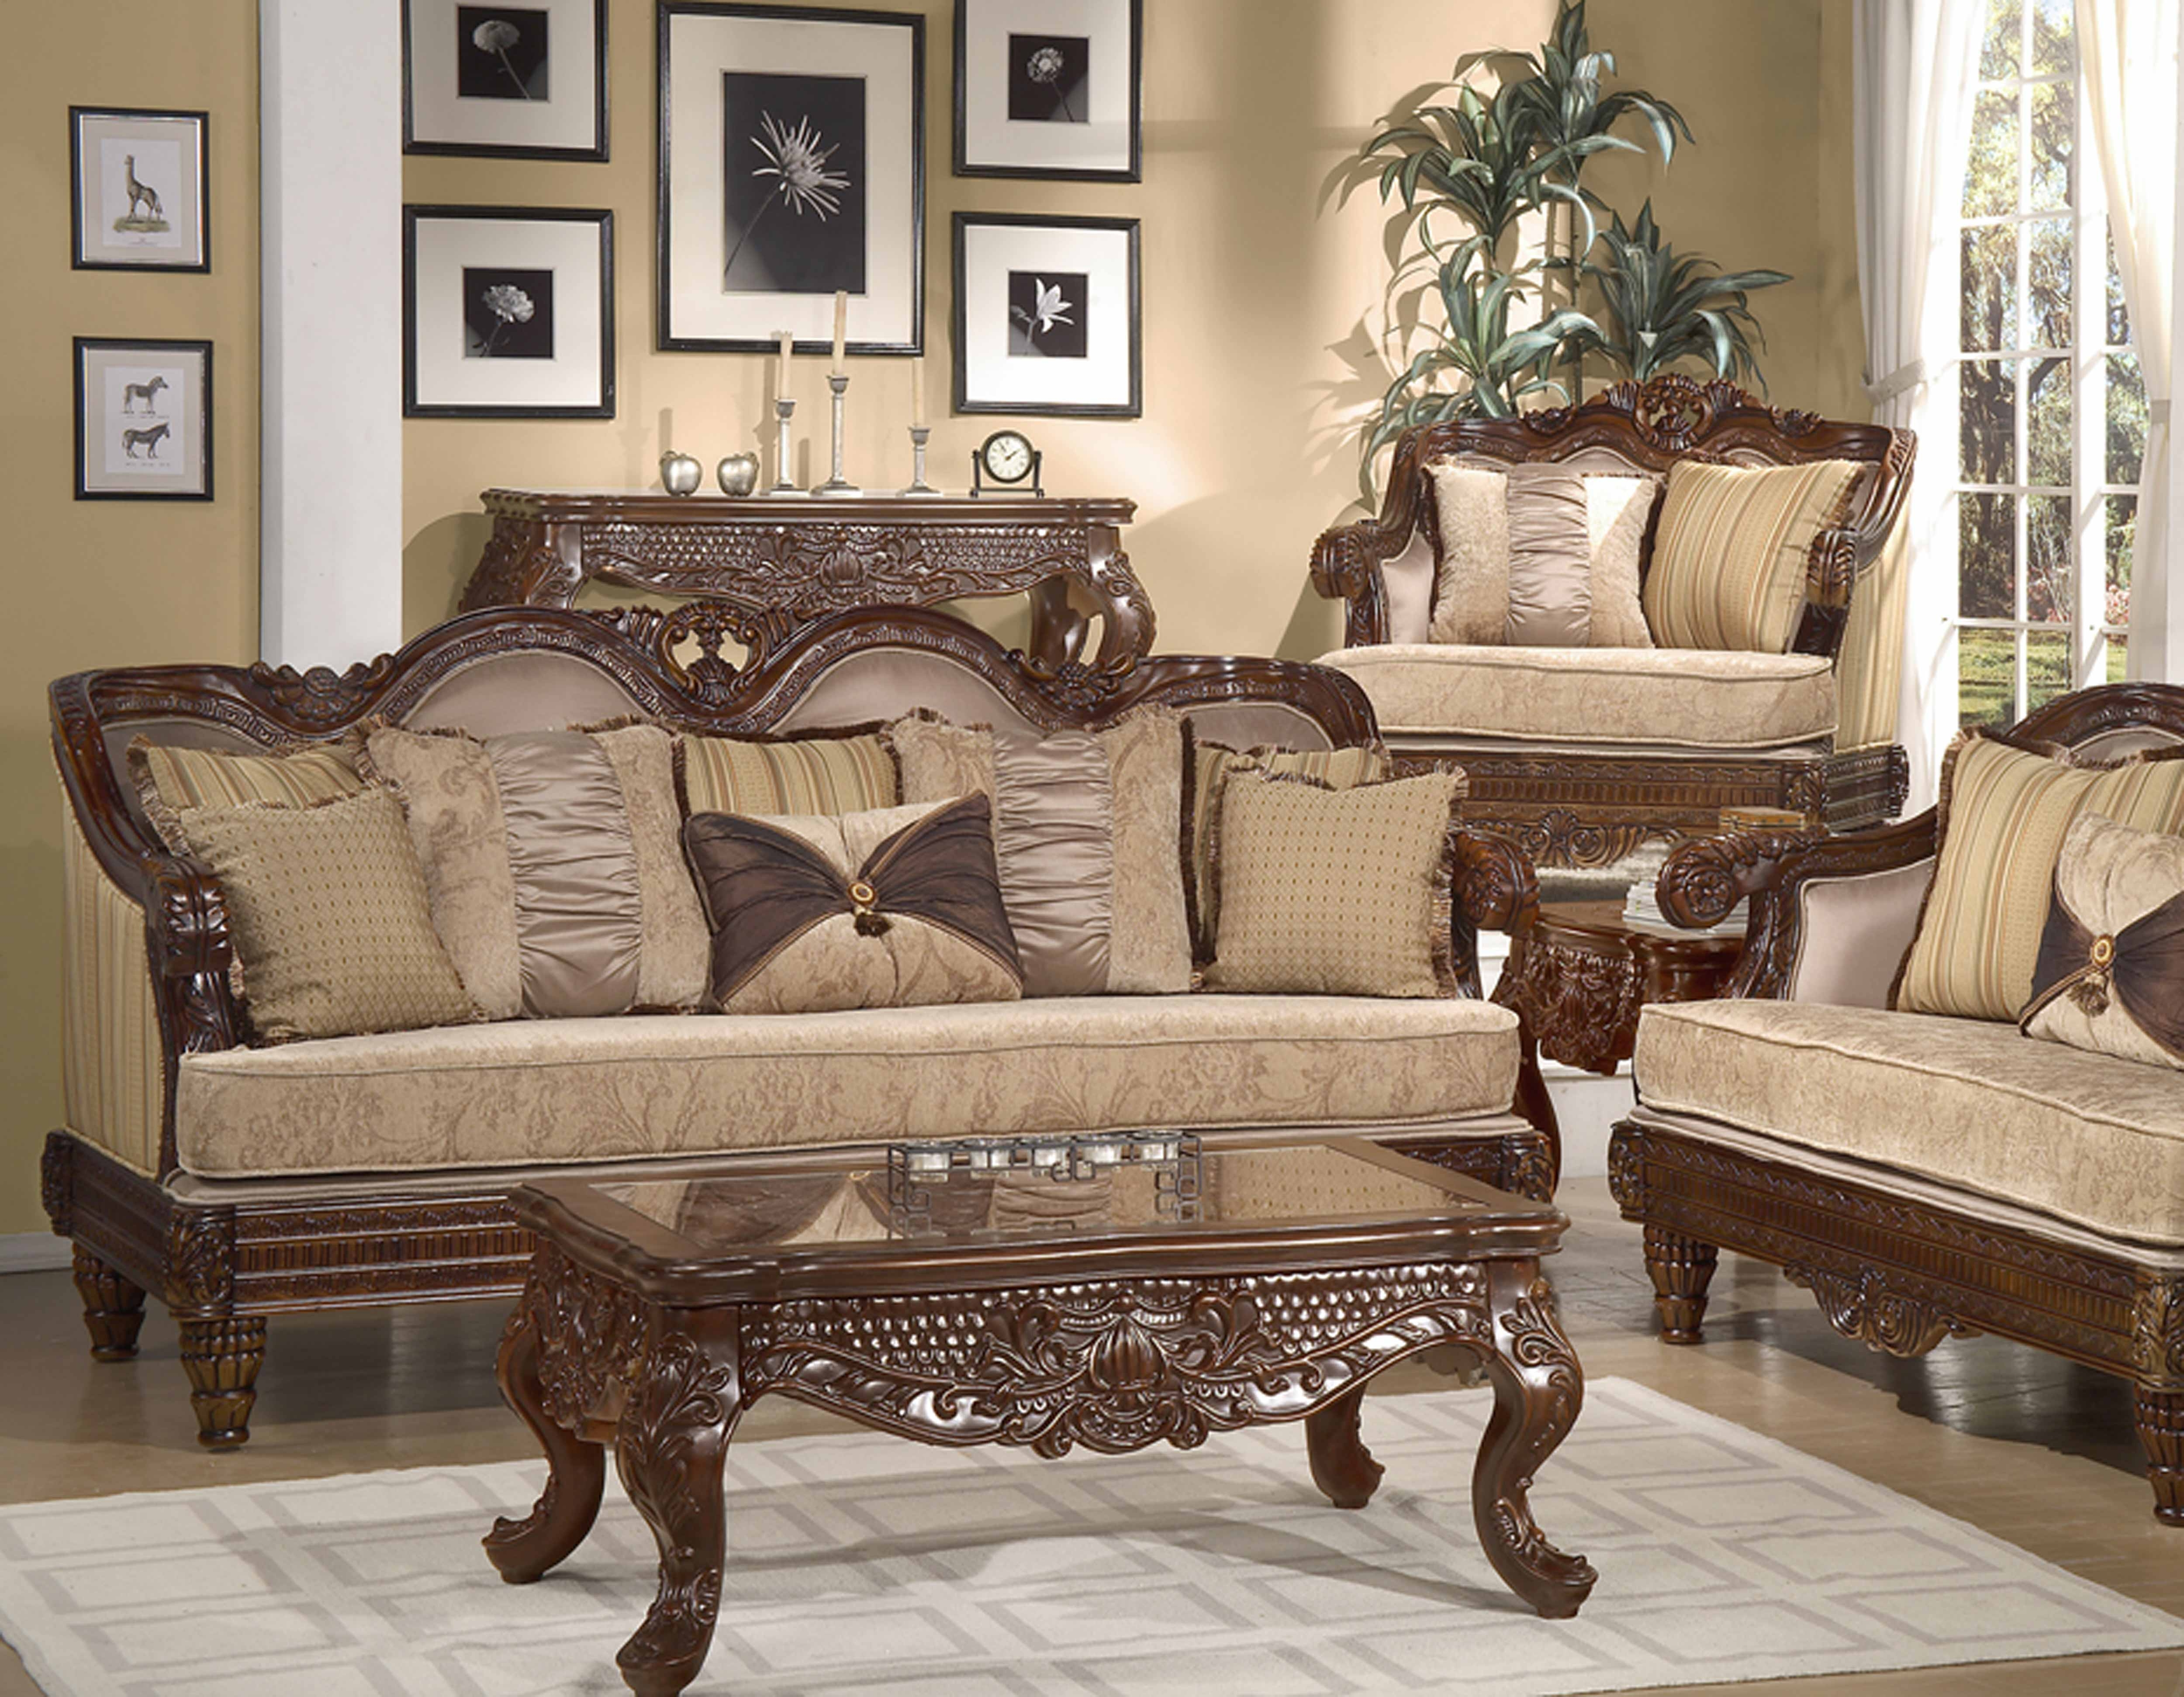 Luxury Sofas And Chairs Hereo Sofa With Big Sofa Chairs (Image 9 of 15)